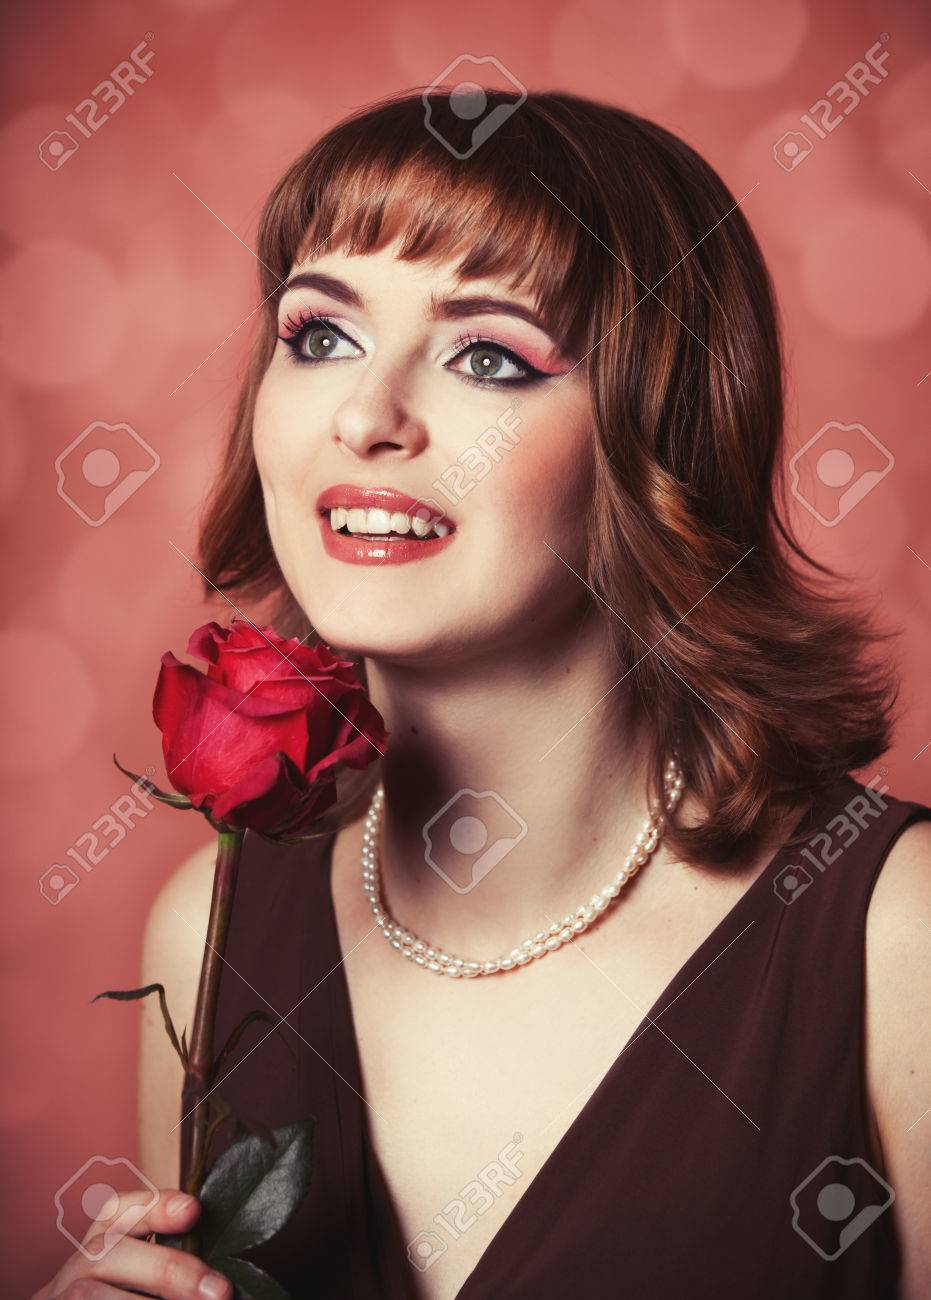 Portrait of a women with rose. Photo in 60s style. - 25430557-portrait-of-a-women-with-rose-photo-in-60s-style